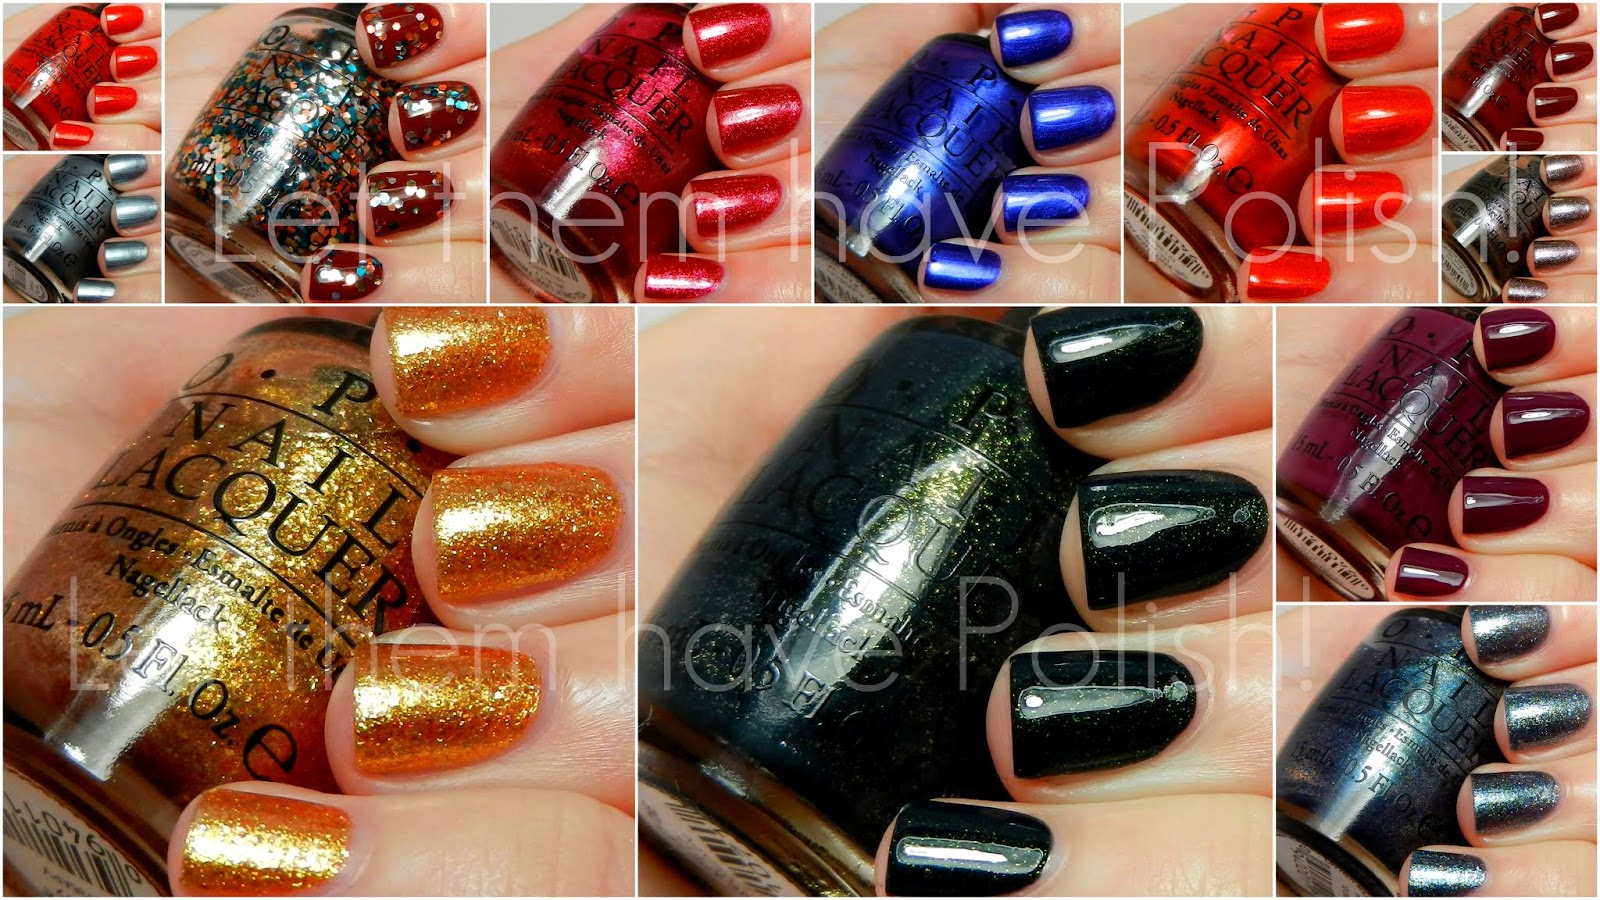 O.P.I Skyfall Collection Swatches